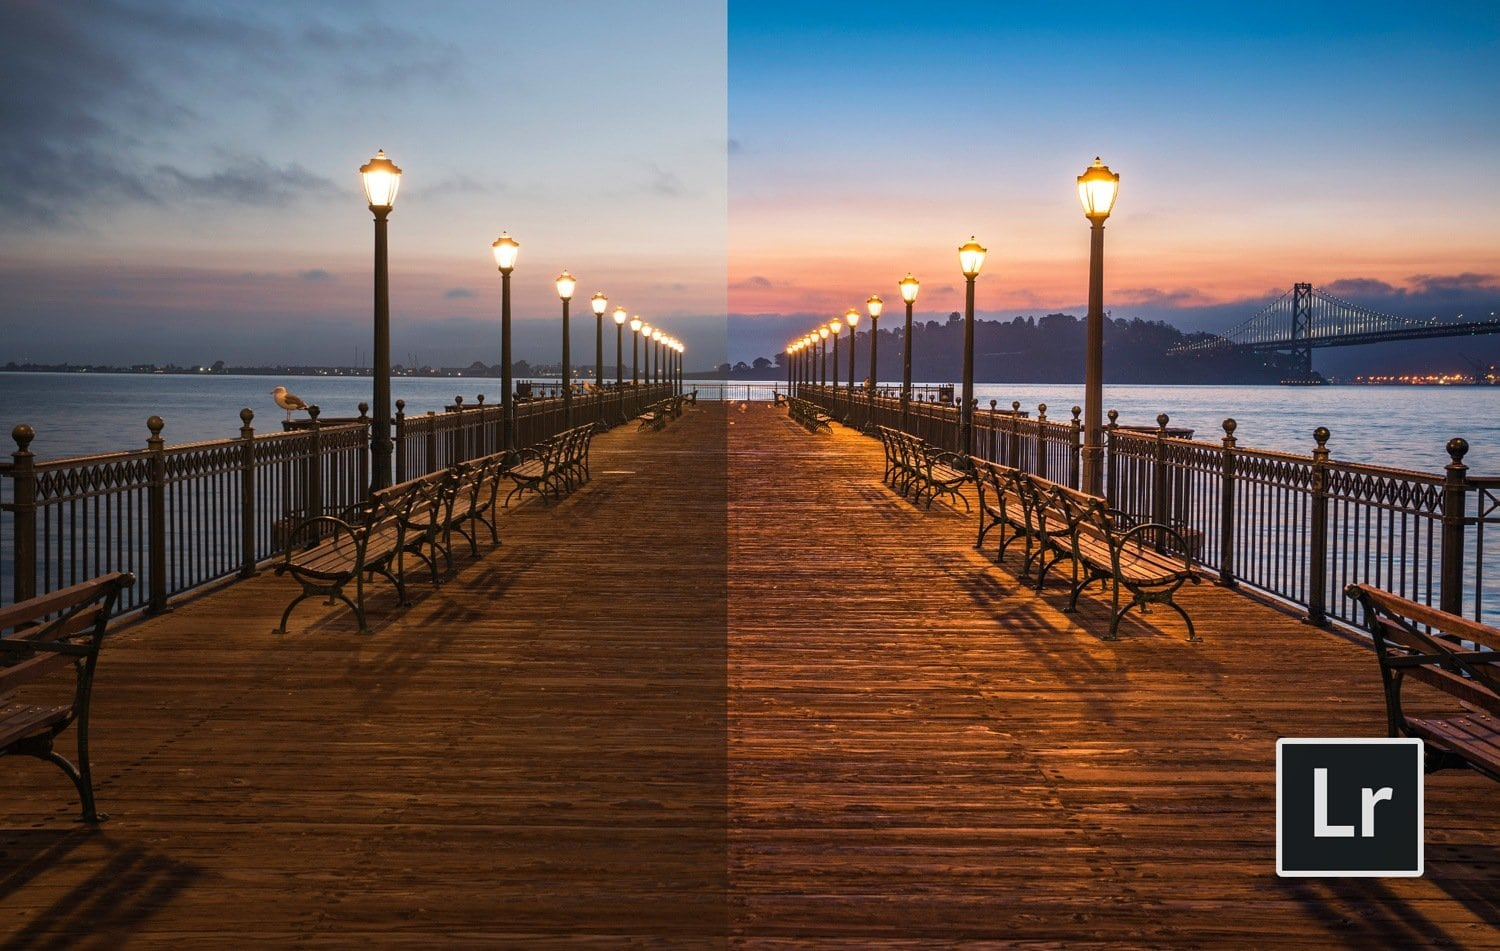 Free-Lightroom-Preset-HDR-Night-Before-and-After-Presetpro.com